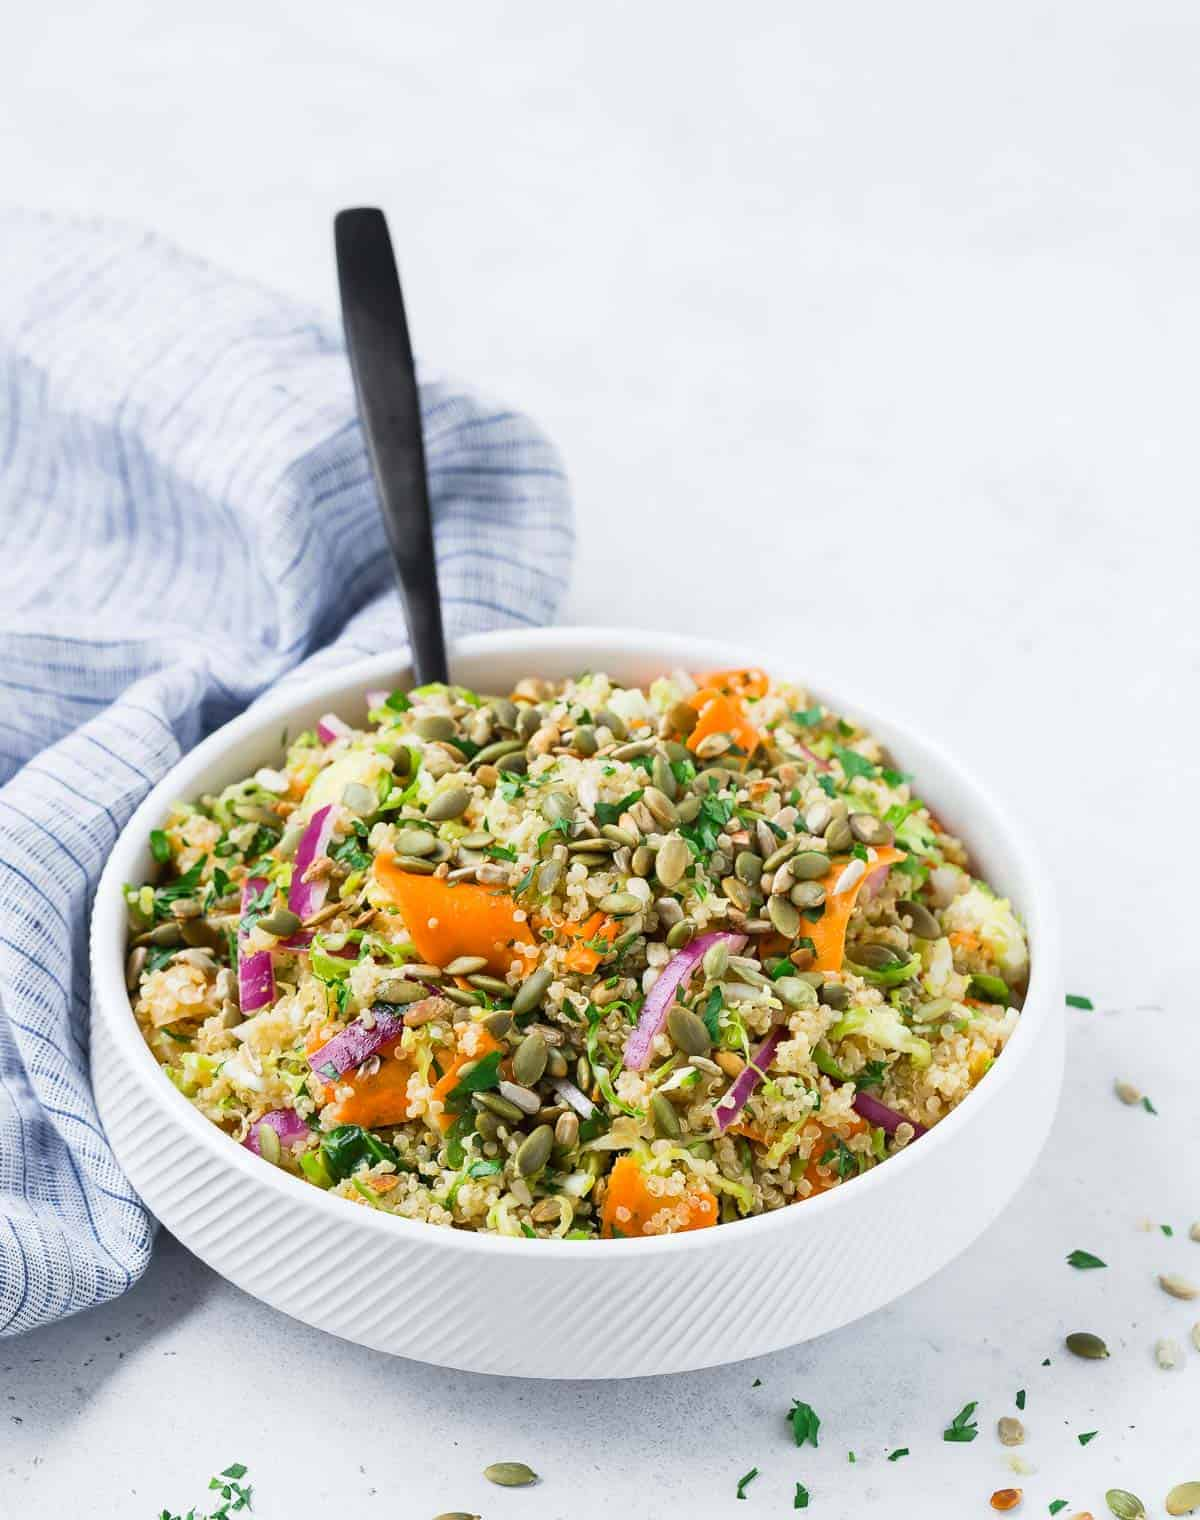 A white bowl filled with colorful salad with quinoa, brussels sprouts, carrots, and red onions.